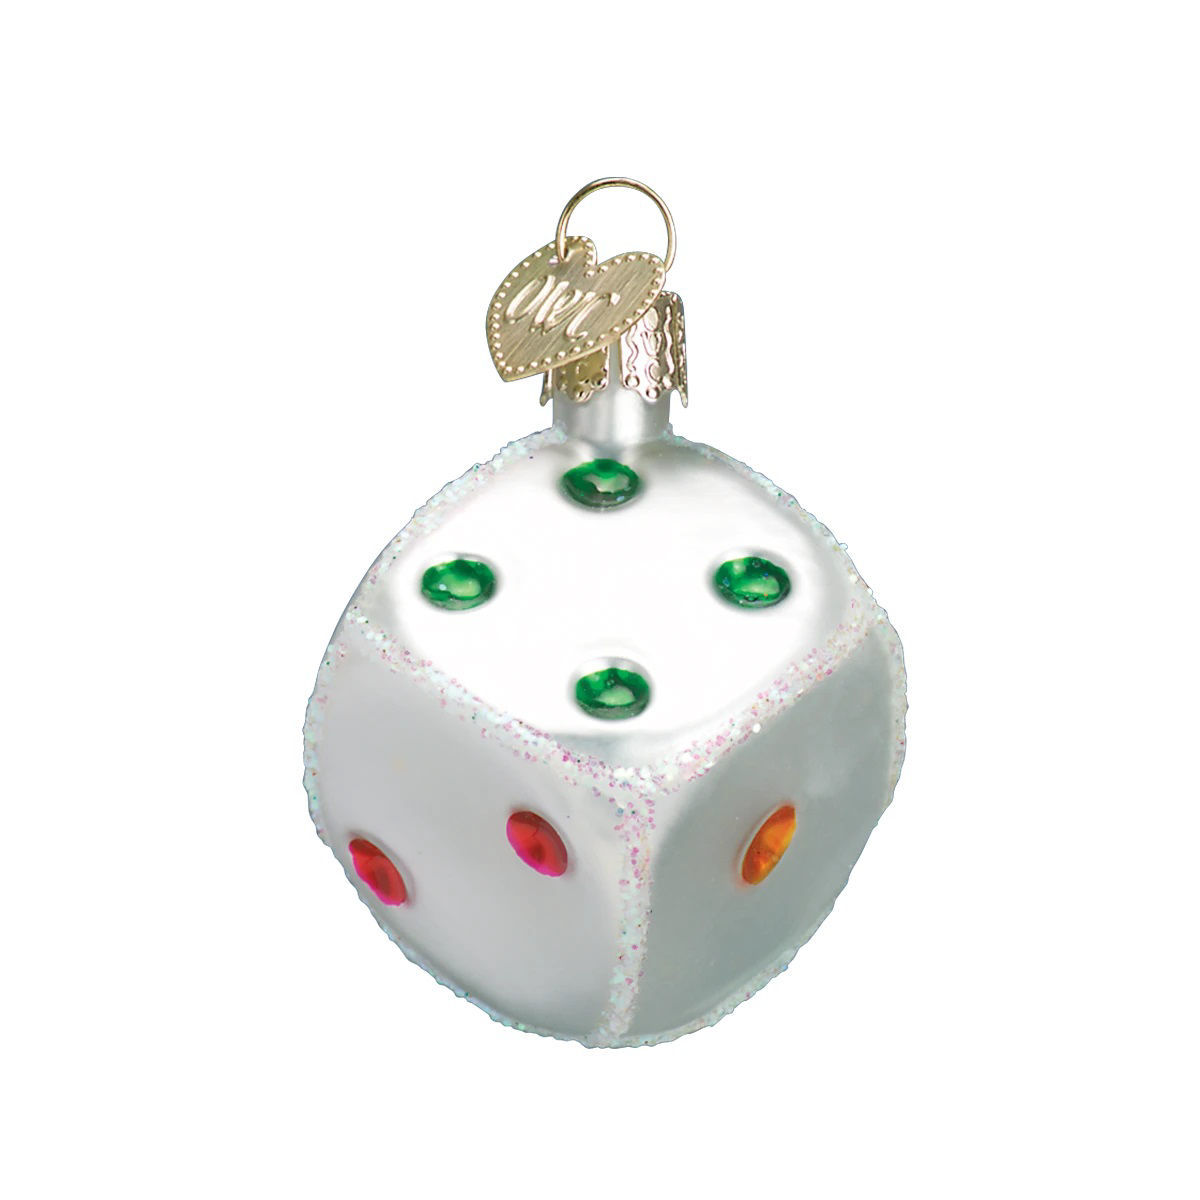 Dice Ornament by Old World Christmas